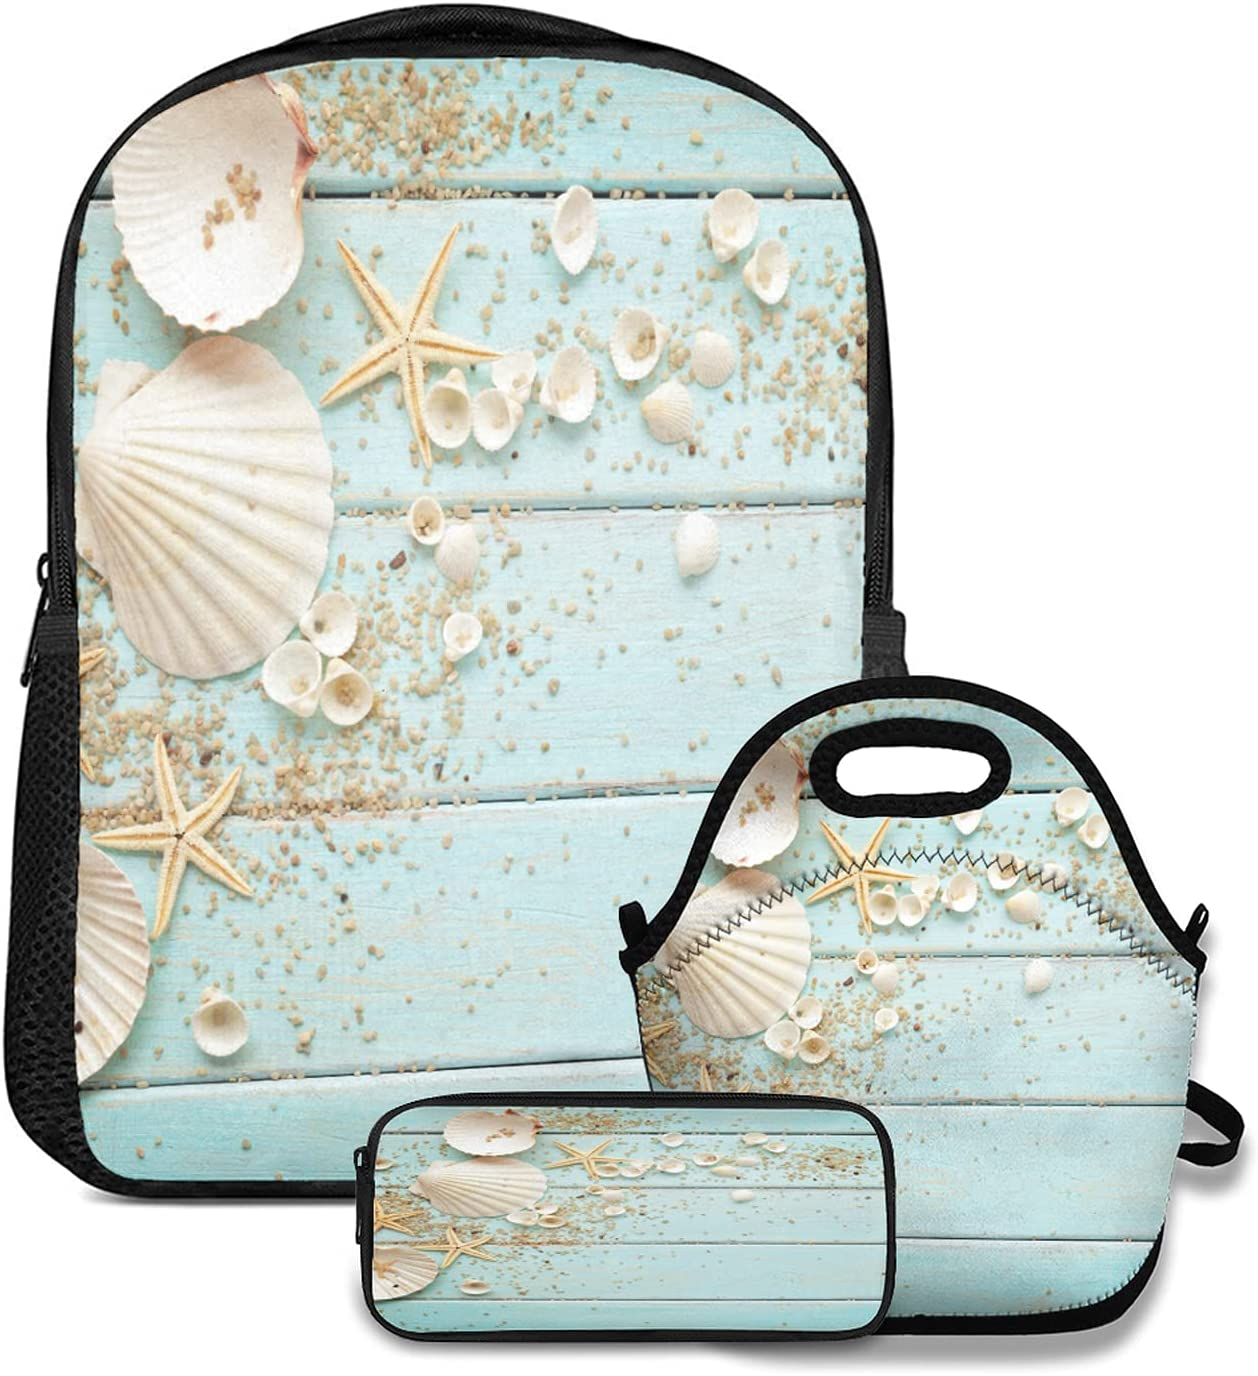 Backpack Lunch tote Bag and Pencil Max 63% OFF Case backg Summertime set 3pc Rapid rise